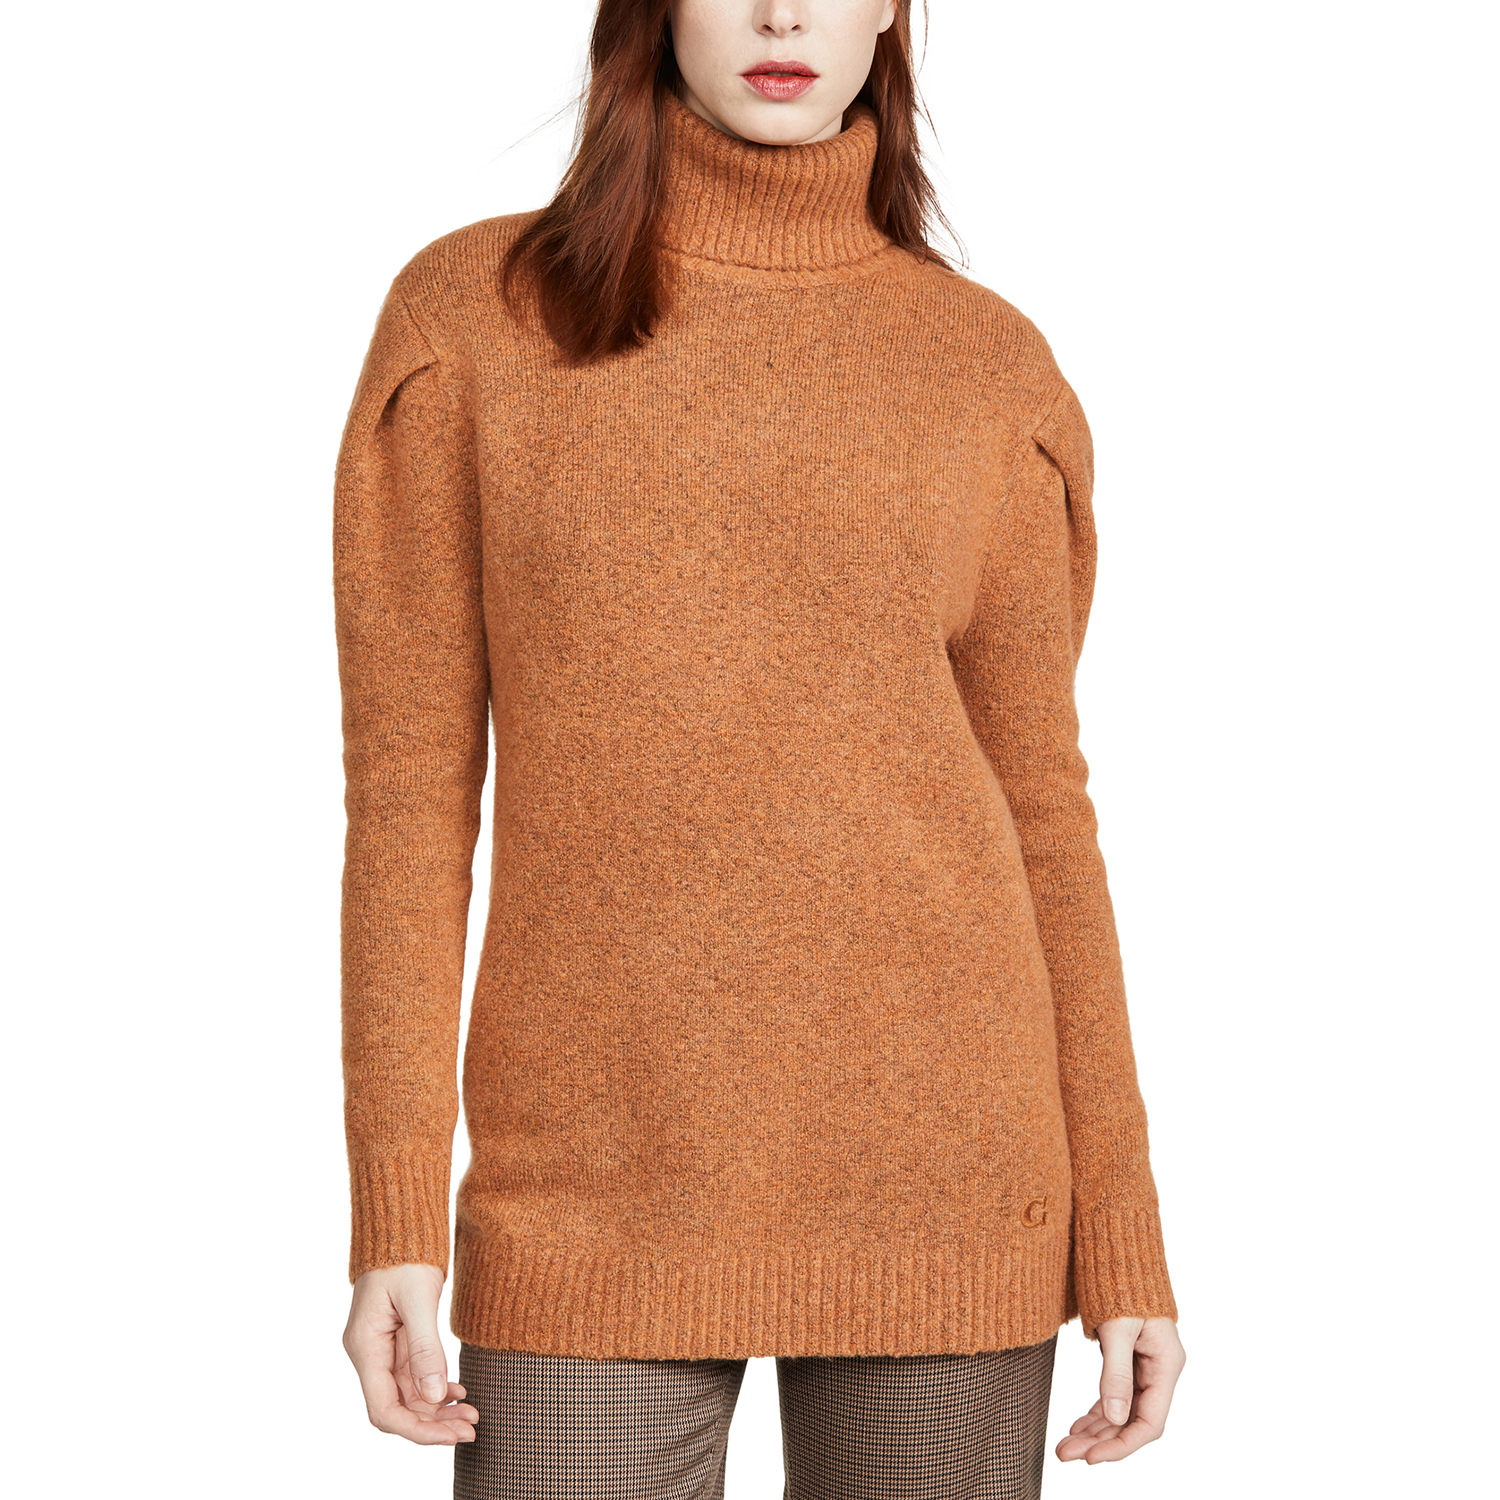 Coach 1941 Frill Sleeve Turtleneck